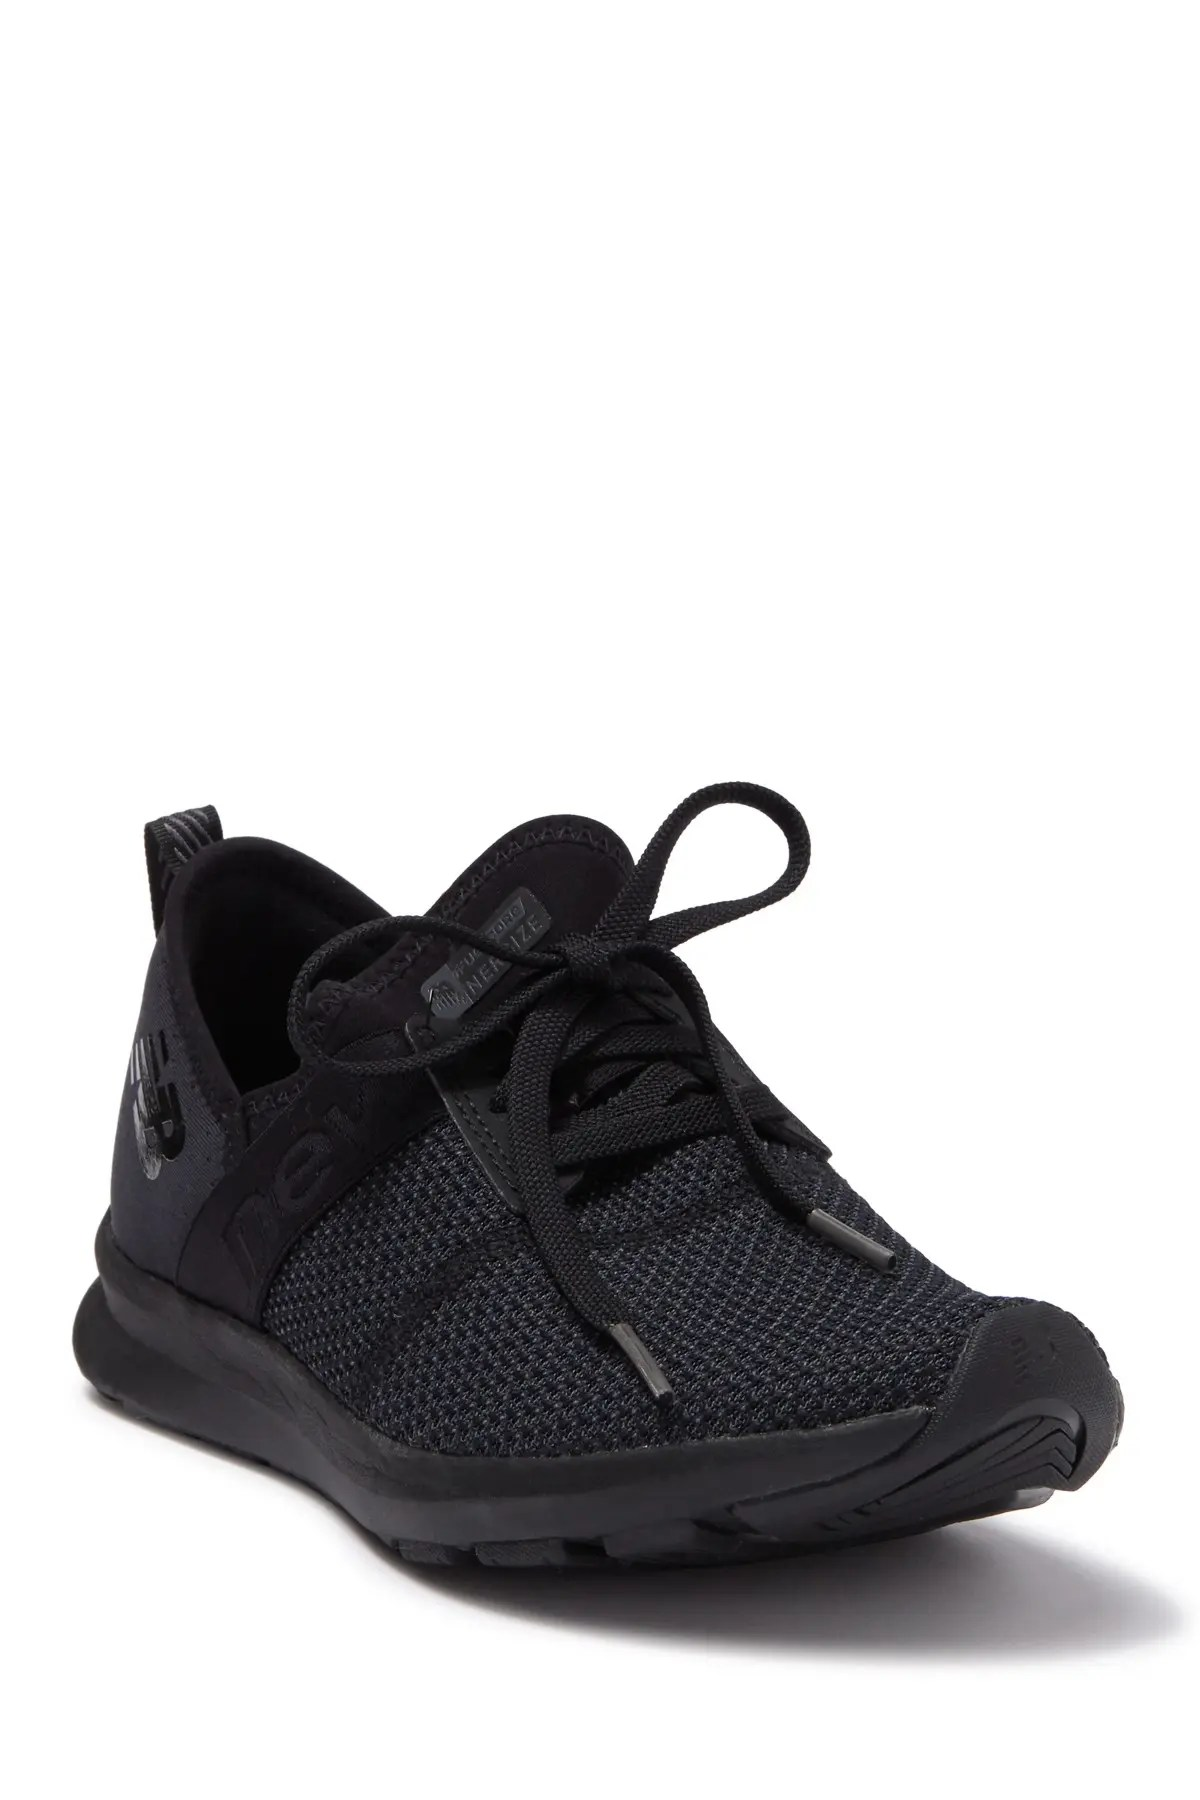 athletic training shoes for women